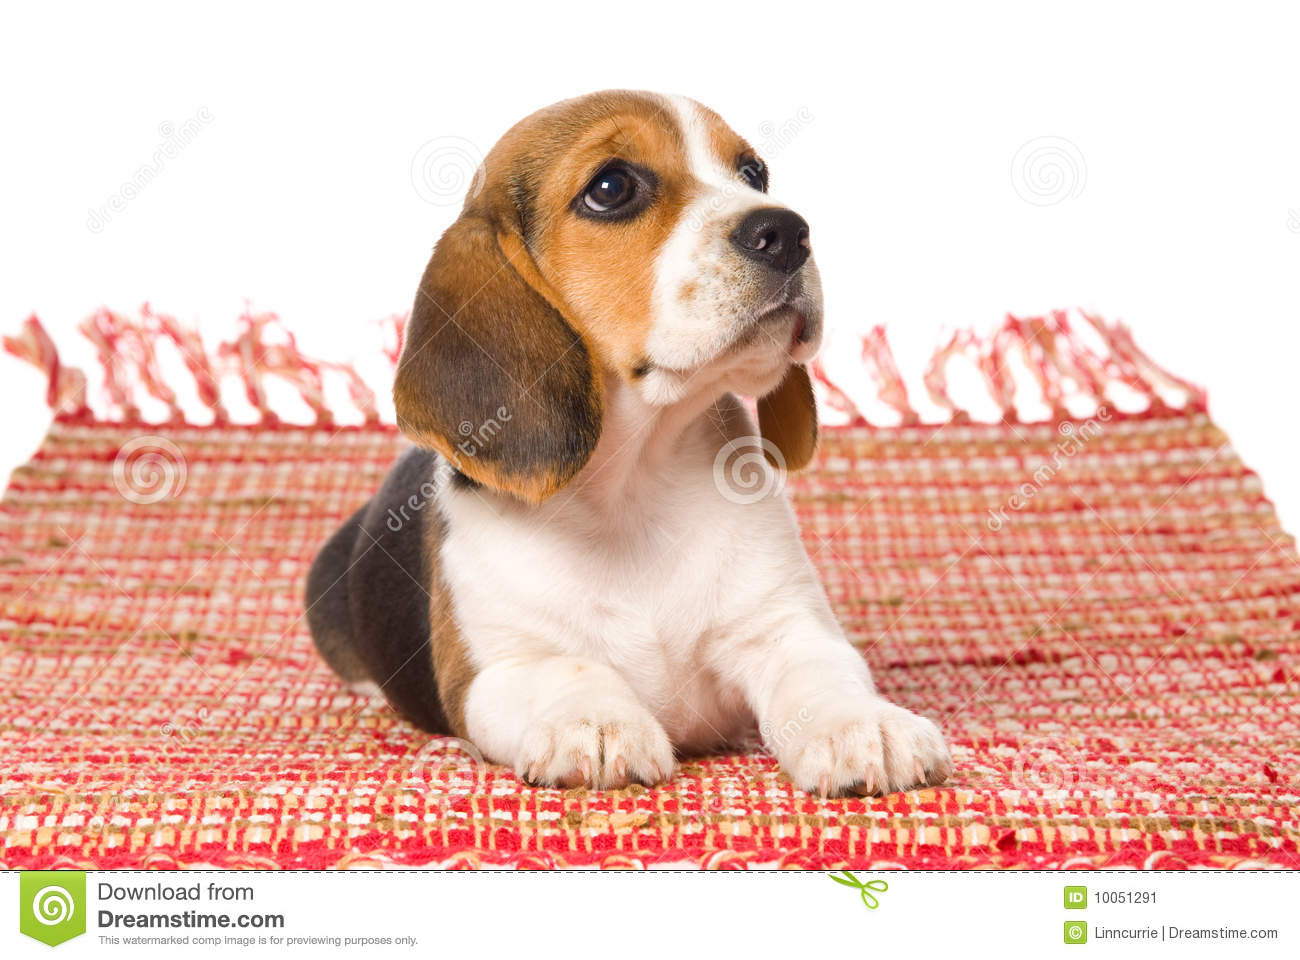 Beagle Puppy Lying Down On Red Woven Rug Stock Image  : beagle puppy lying down red woven rug 10051291 from www.dreamstime.com size 1300 x 960 jpeg 172kB